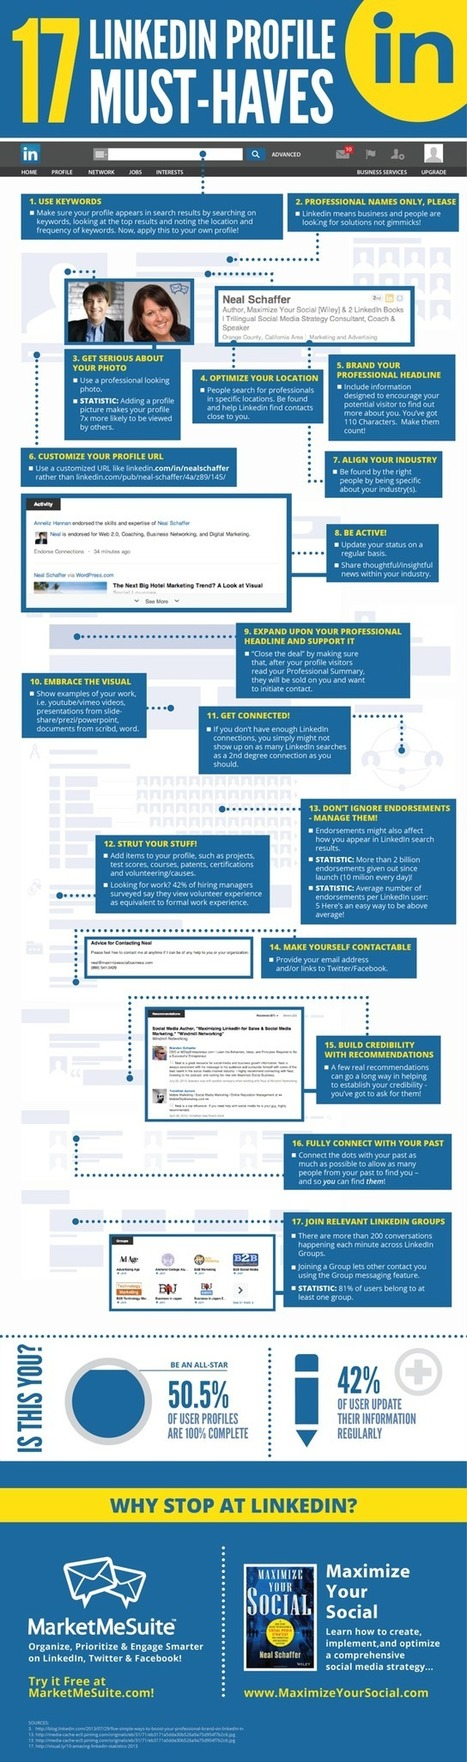 17 LinkedIn Profile Must-Haves - Blog About Infographics and Data Visualization - Cool Infographics | Eportfolio | Scoop.it